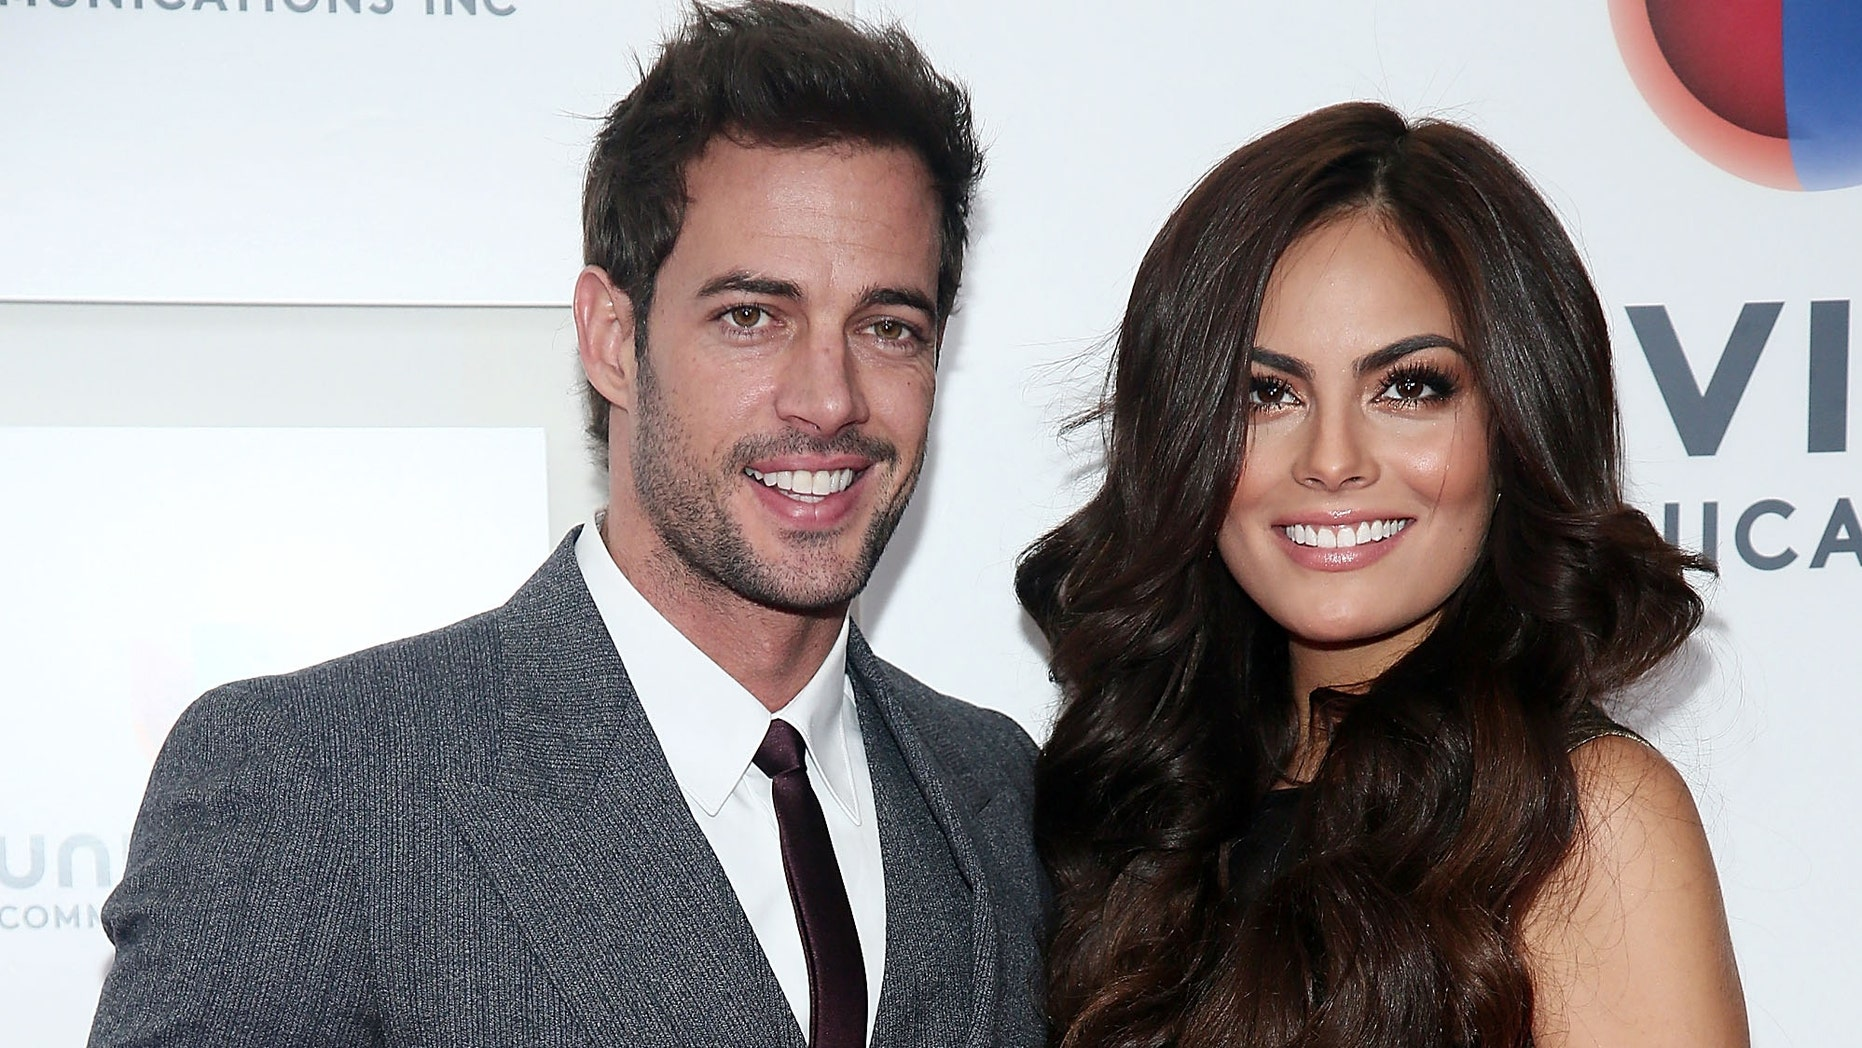 """NEW YORK, NY - MAY 14:  (L-R) William Levy and Jimena """"Ximena"""" Navarrete attend the  2013 Univision Upfront Presentation at Espace on May 14, 2013 in New York City.  (Photo by Astrid Stawiarz/Getty Images)"""